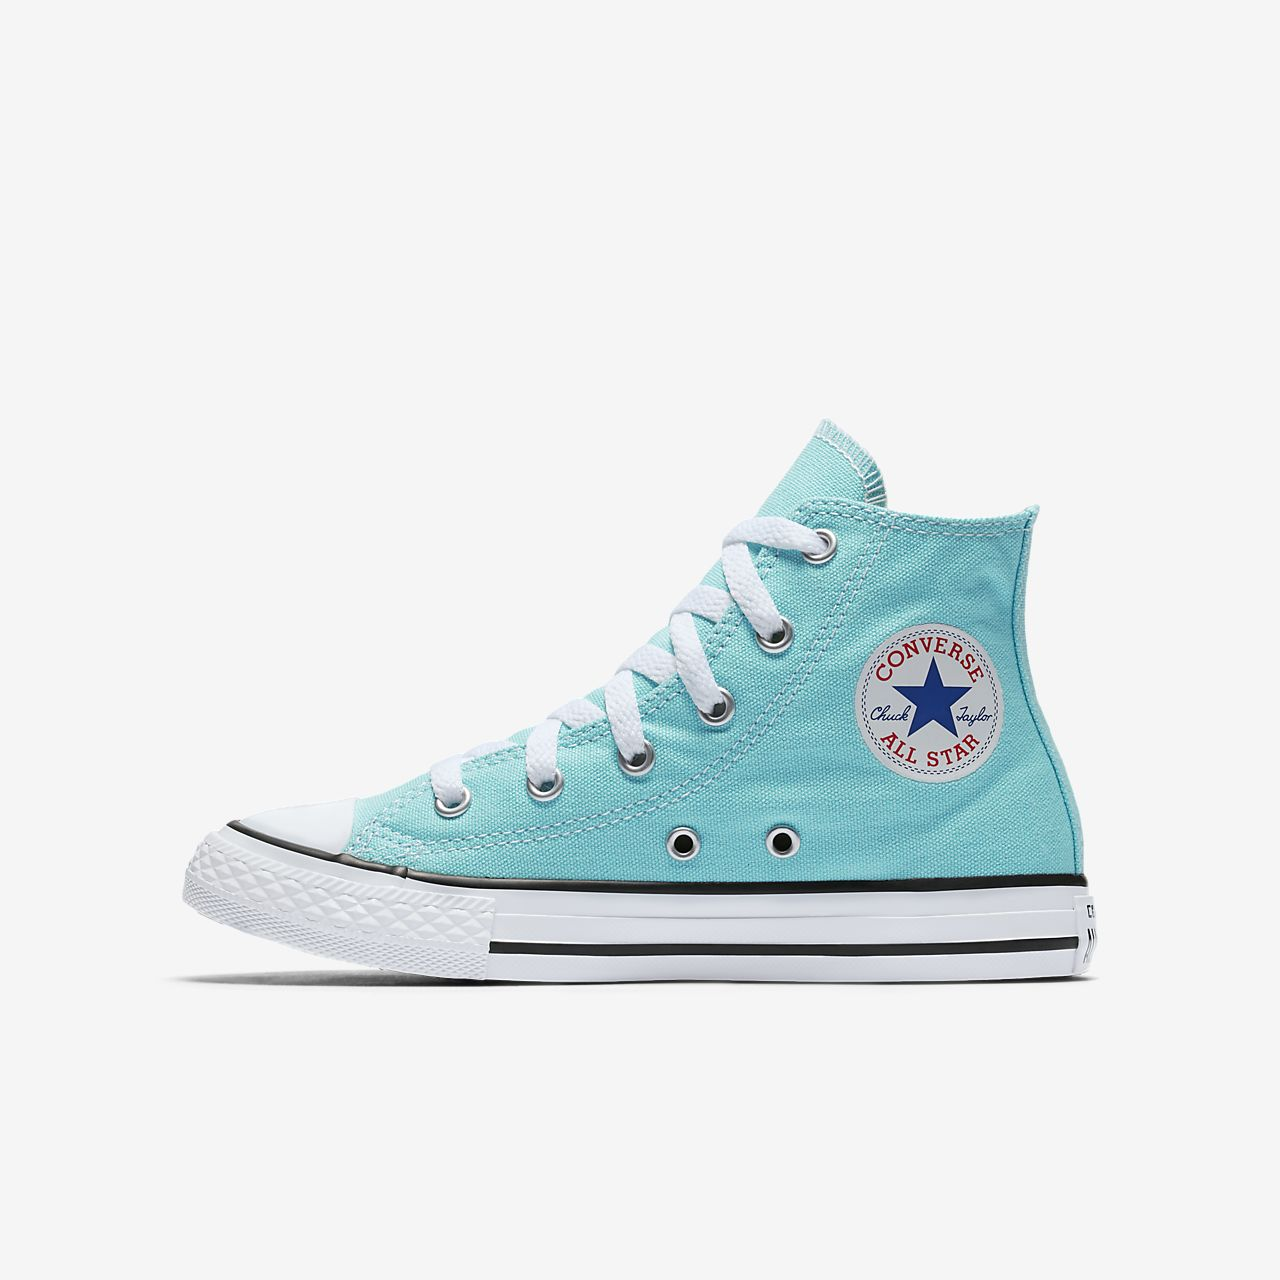 Converse Chuck Taylor All Star Seasonal High Top Little/Big Kids' Shoe